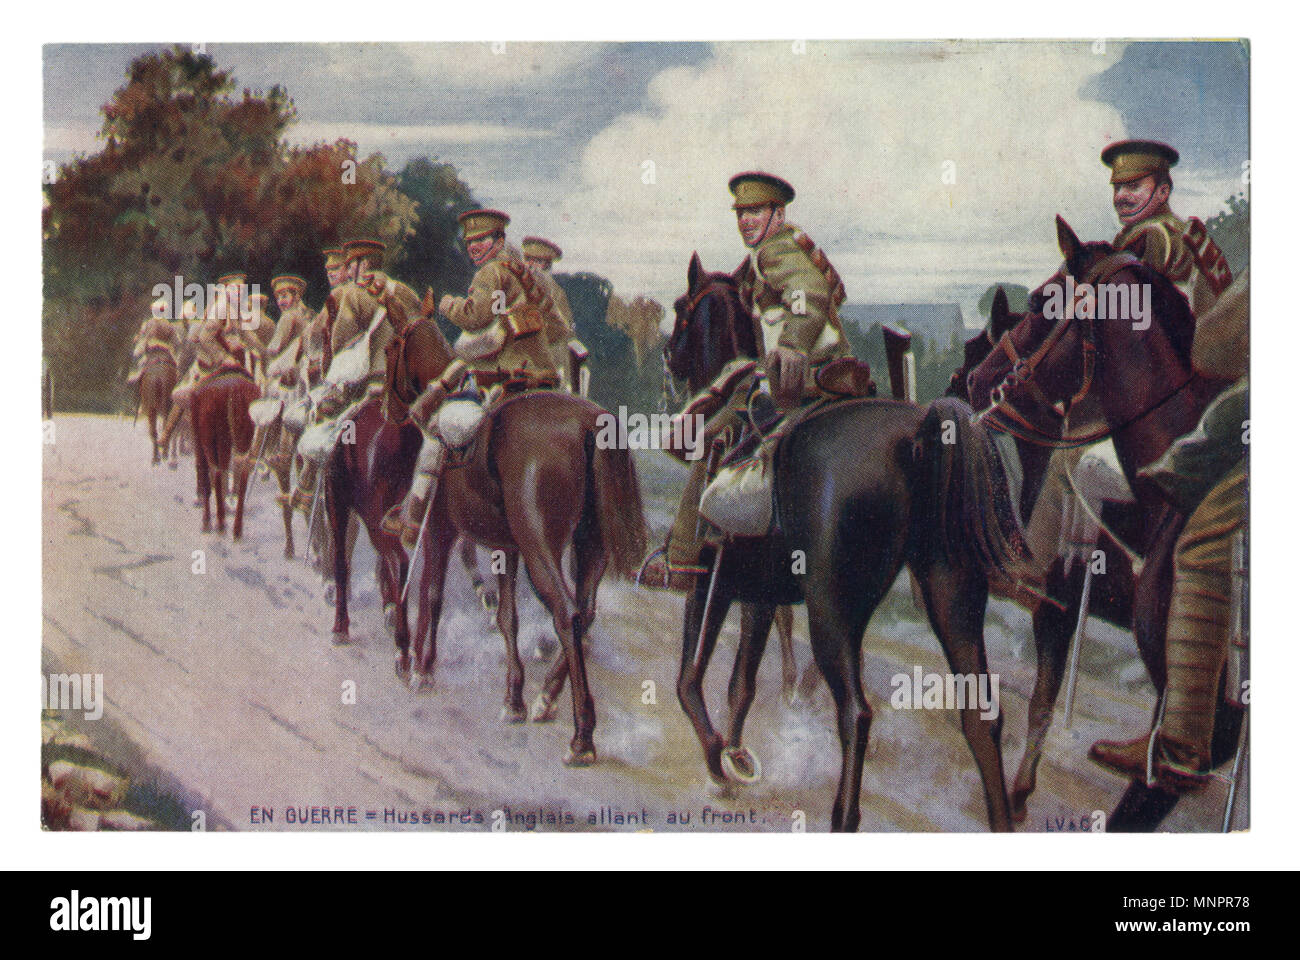 Old French postcard: A column of English cavalry on horseback moving along the road. world war I 1914-1918, The great Britain, Entente. - Stock Image